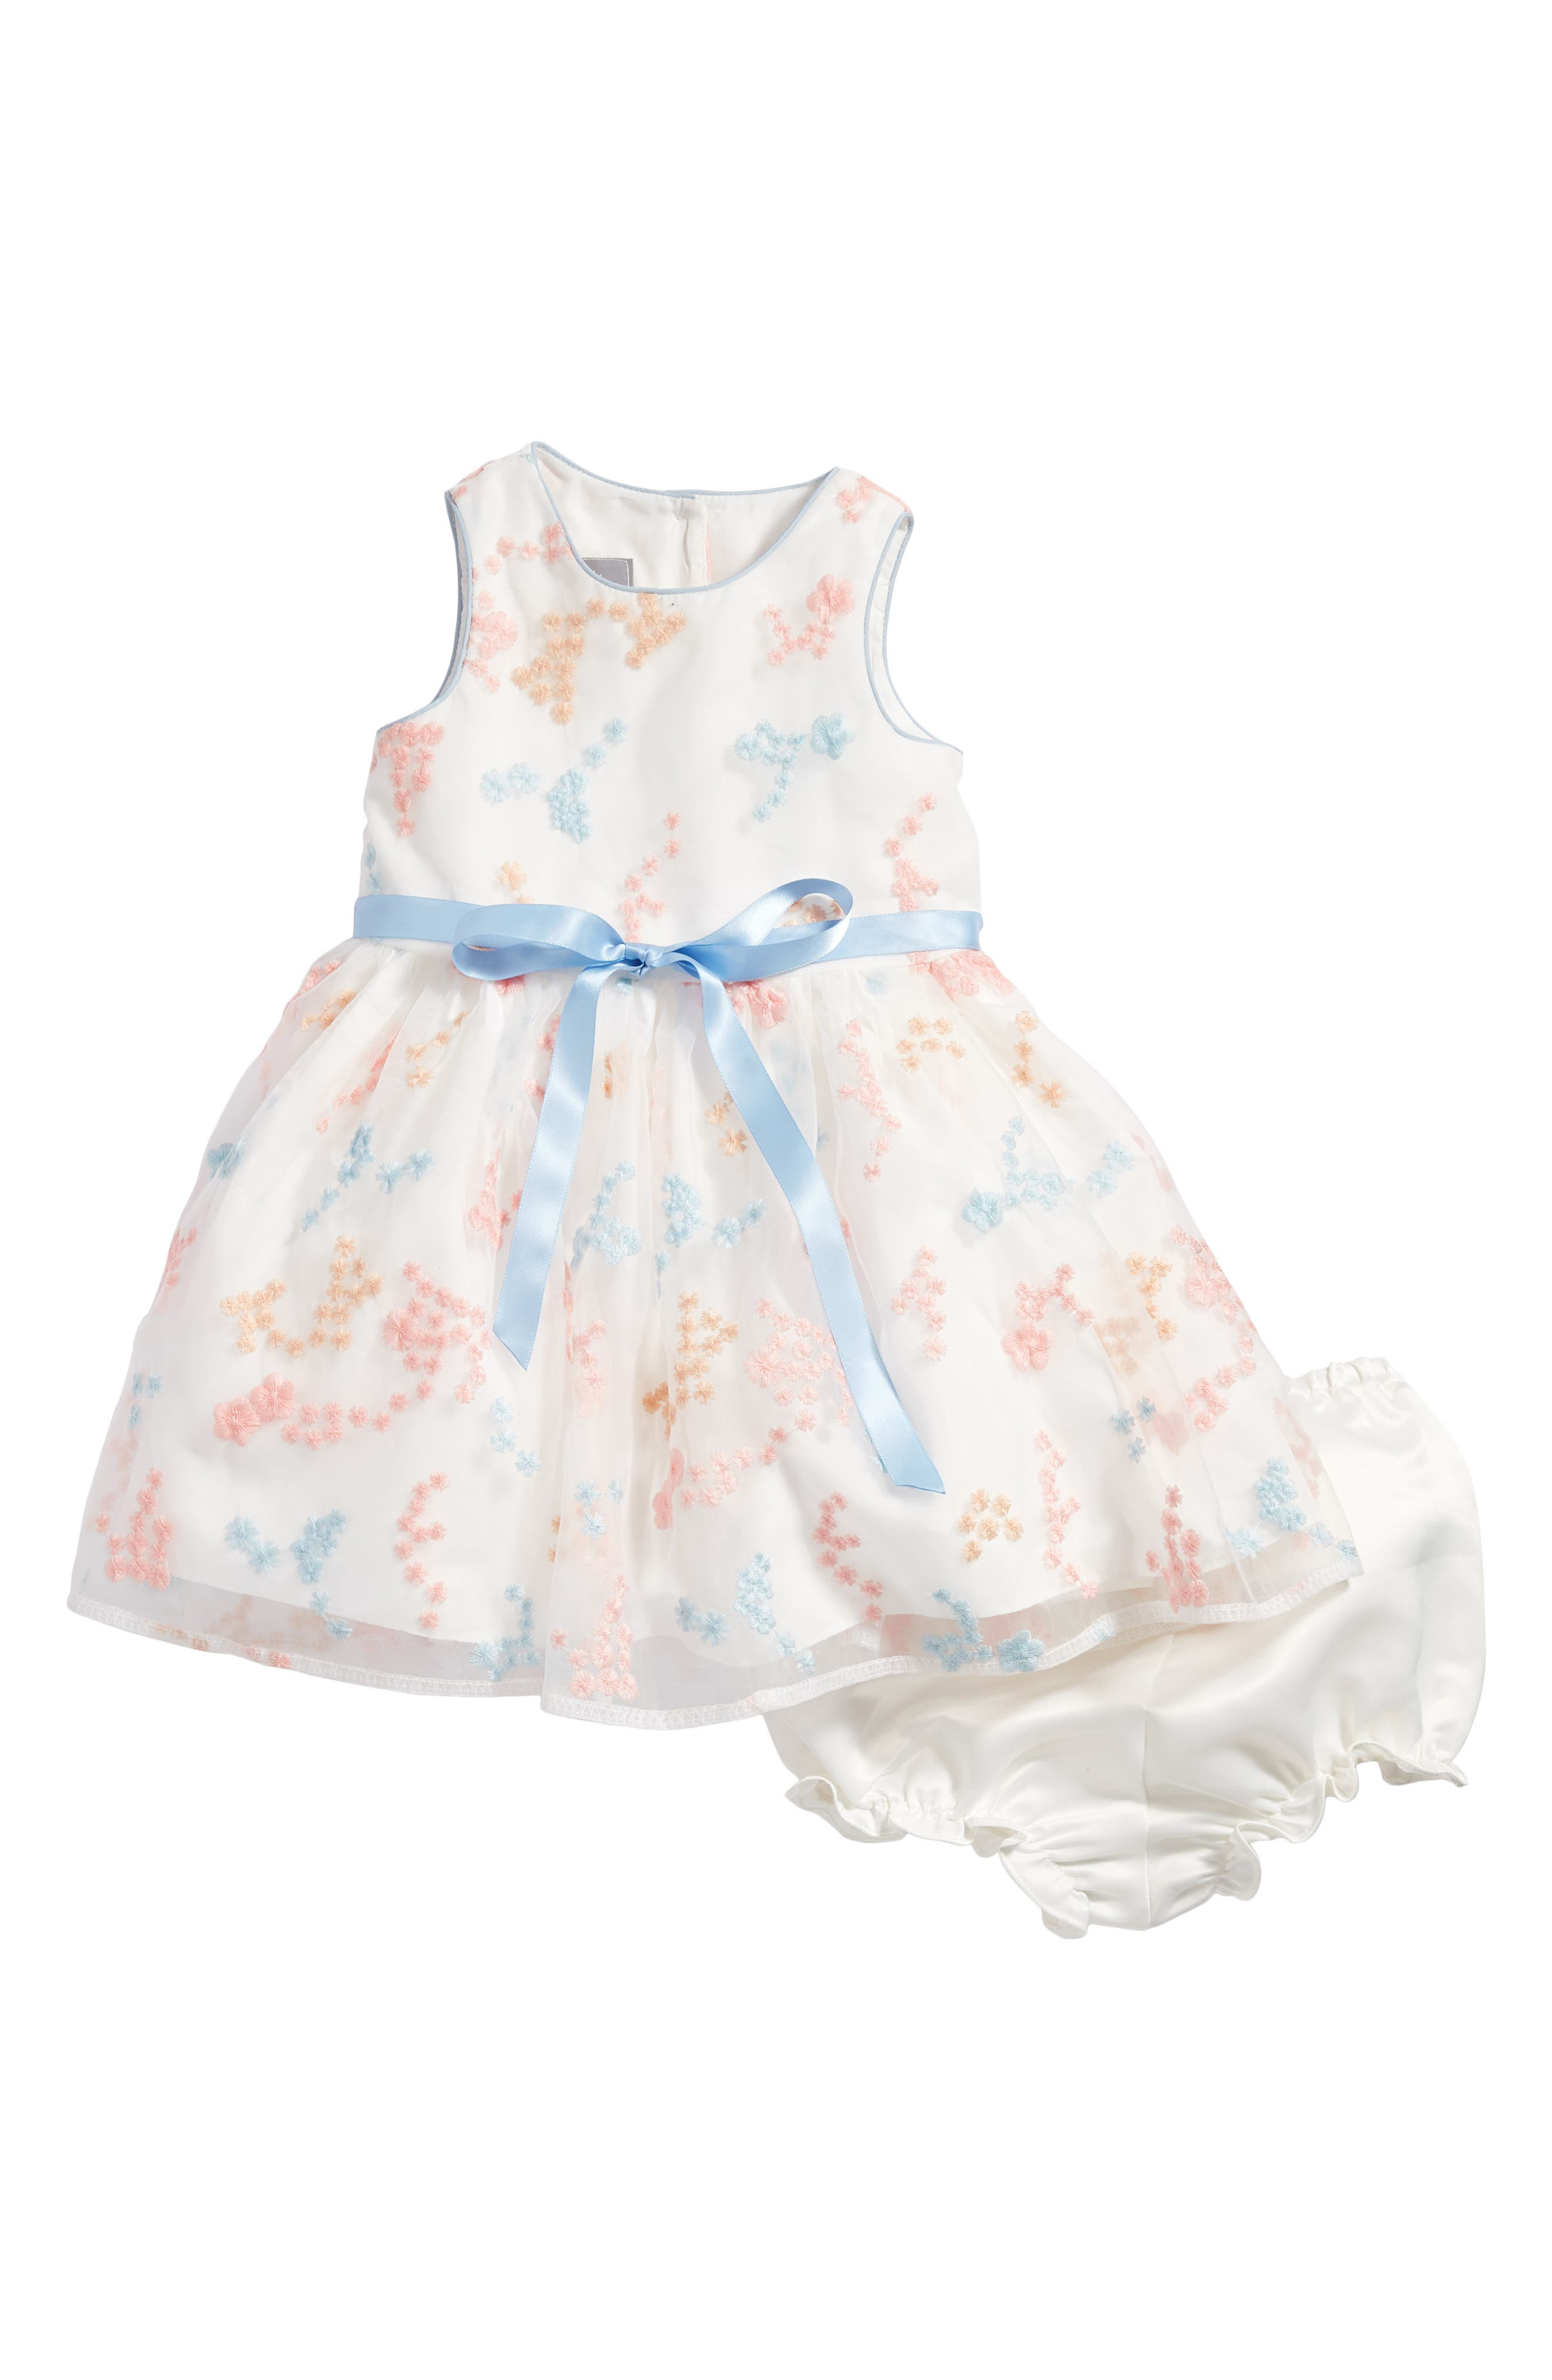 Embroidered Flower Dress,                             Main thumbnail 1, color,                             900